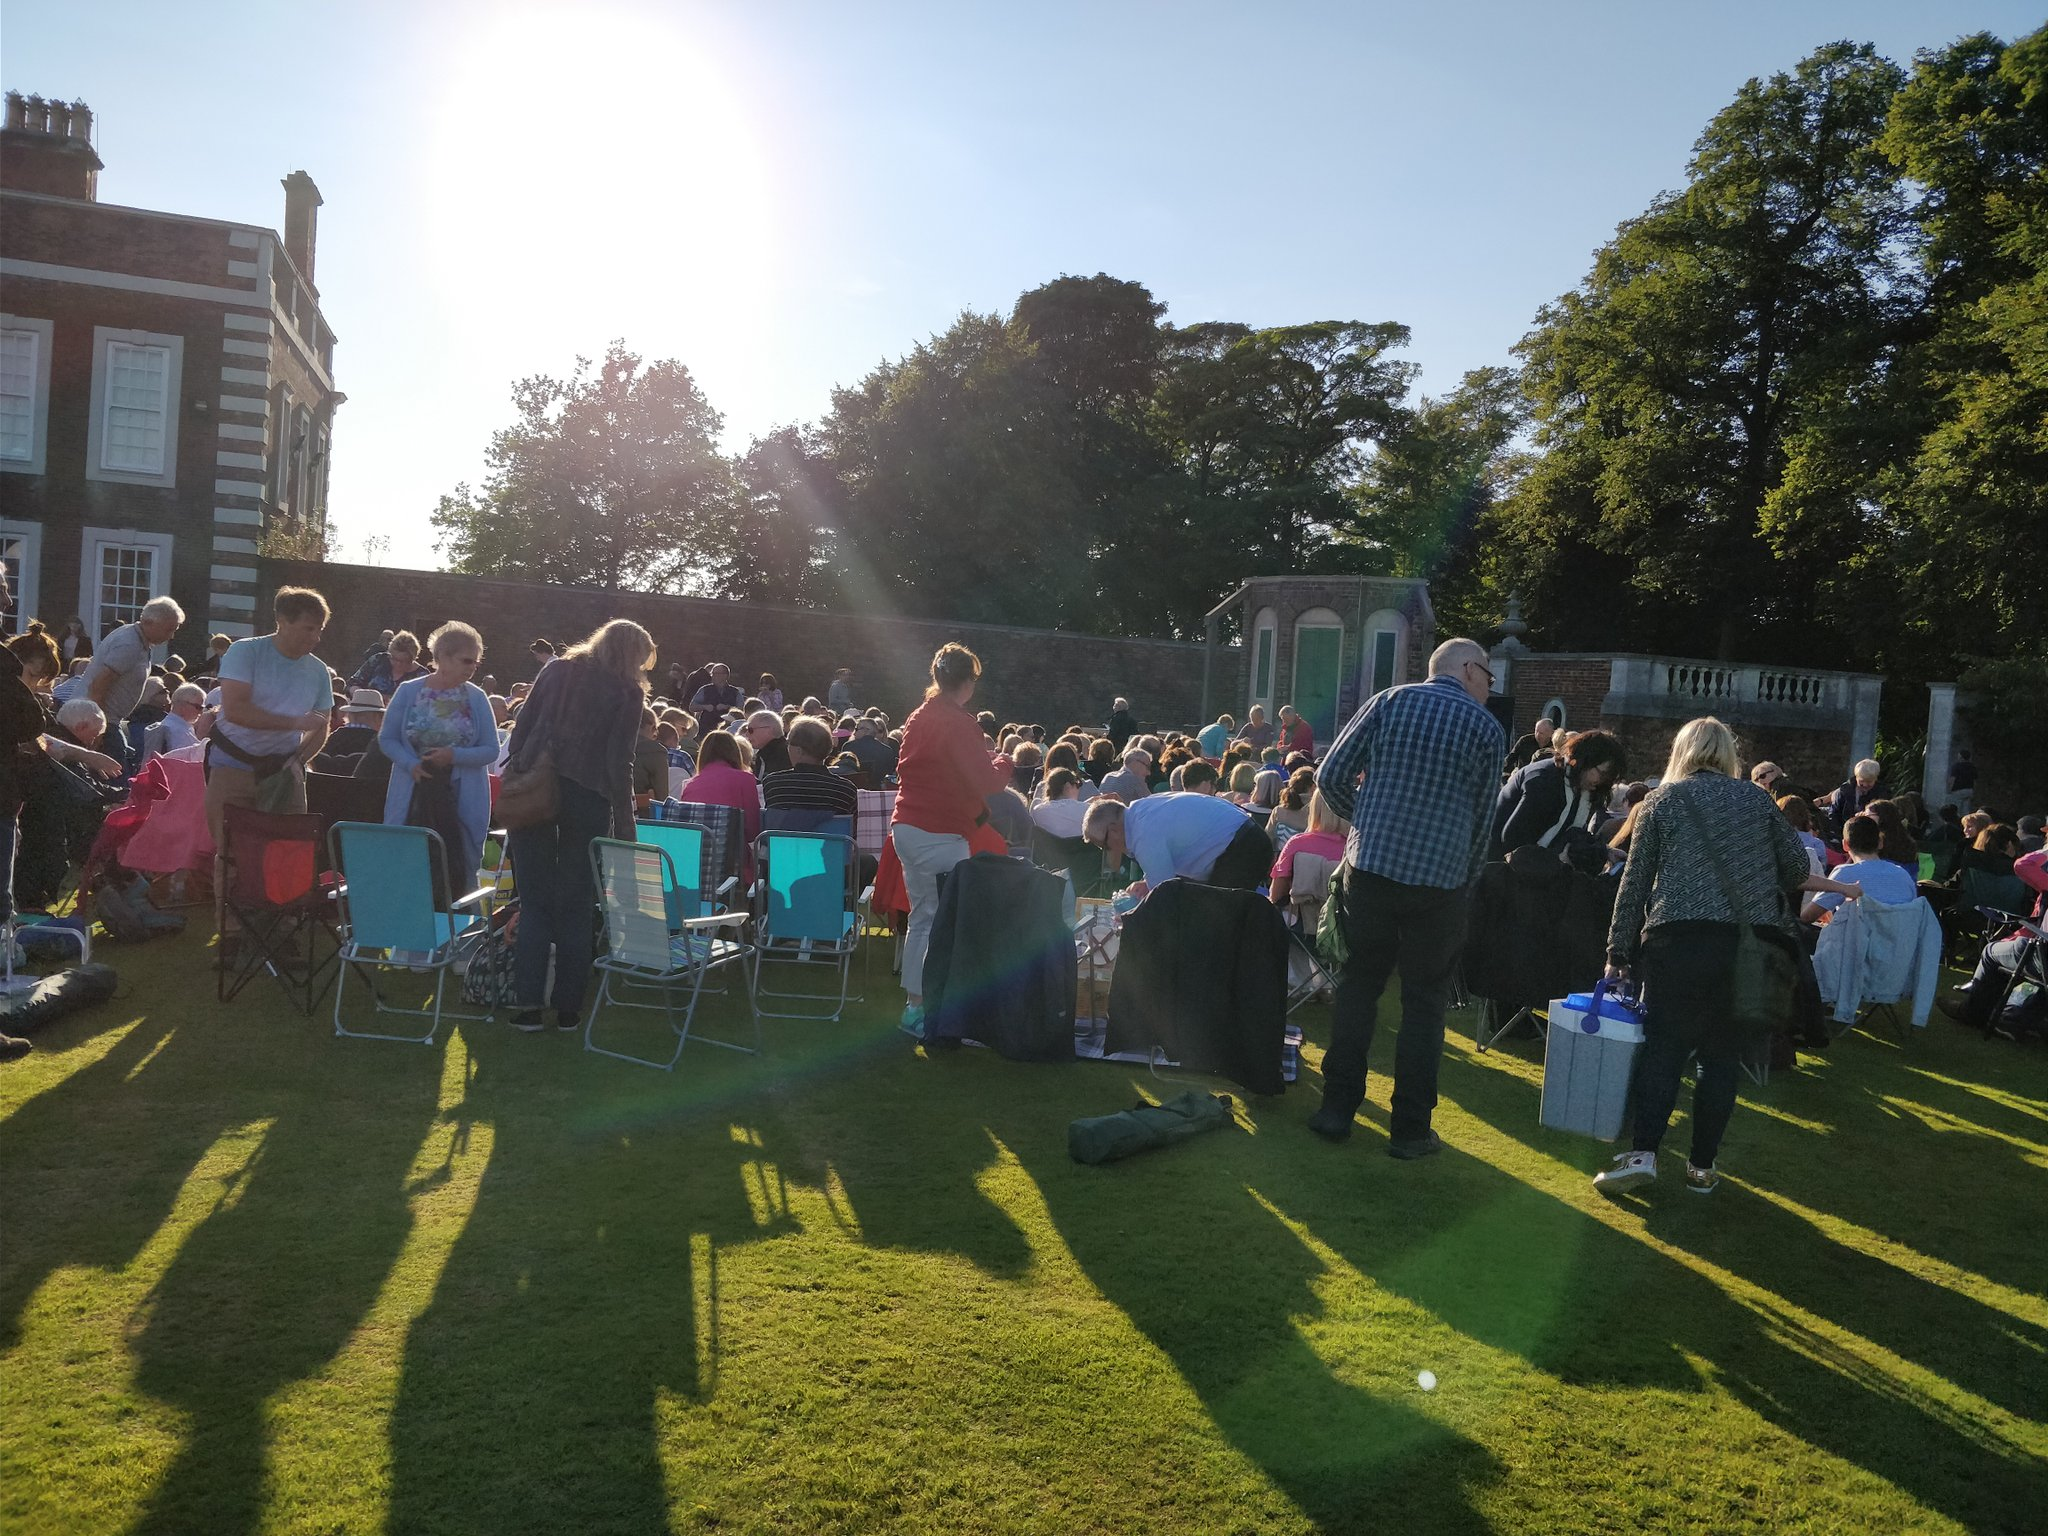 Who's setting up their picnic at Knowsley Hall this beautiful evening? #AComedyofErrors #Shakespeare https://t.co/w76msGn2RE